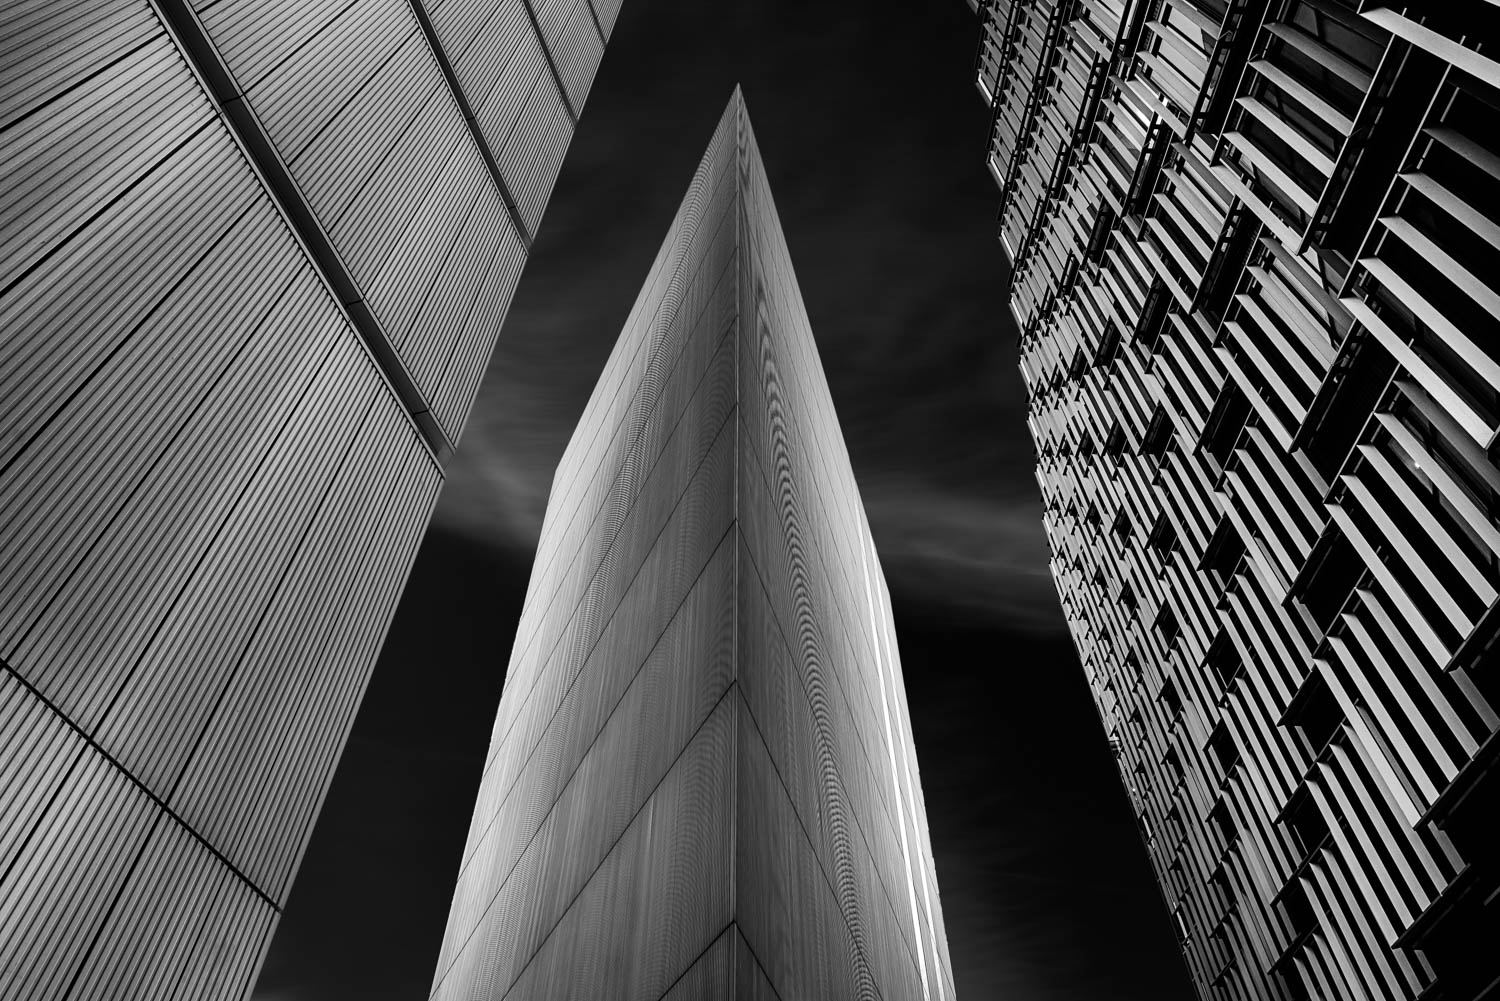 Architectural Lines black and white photograph